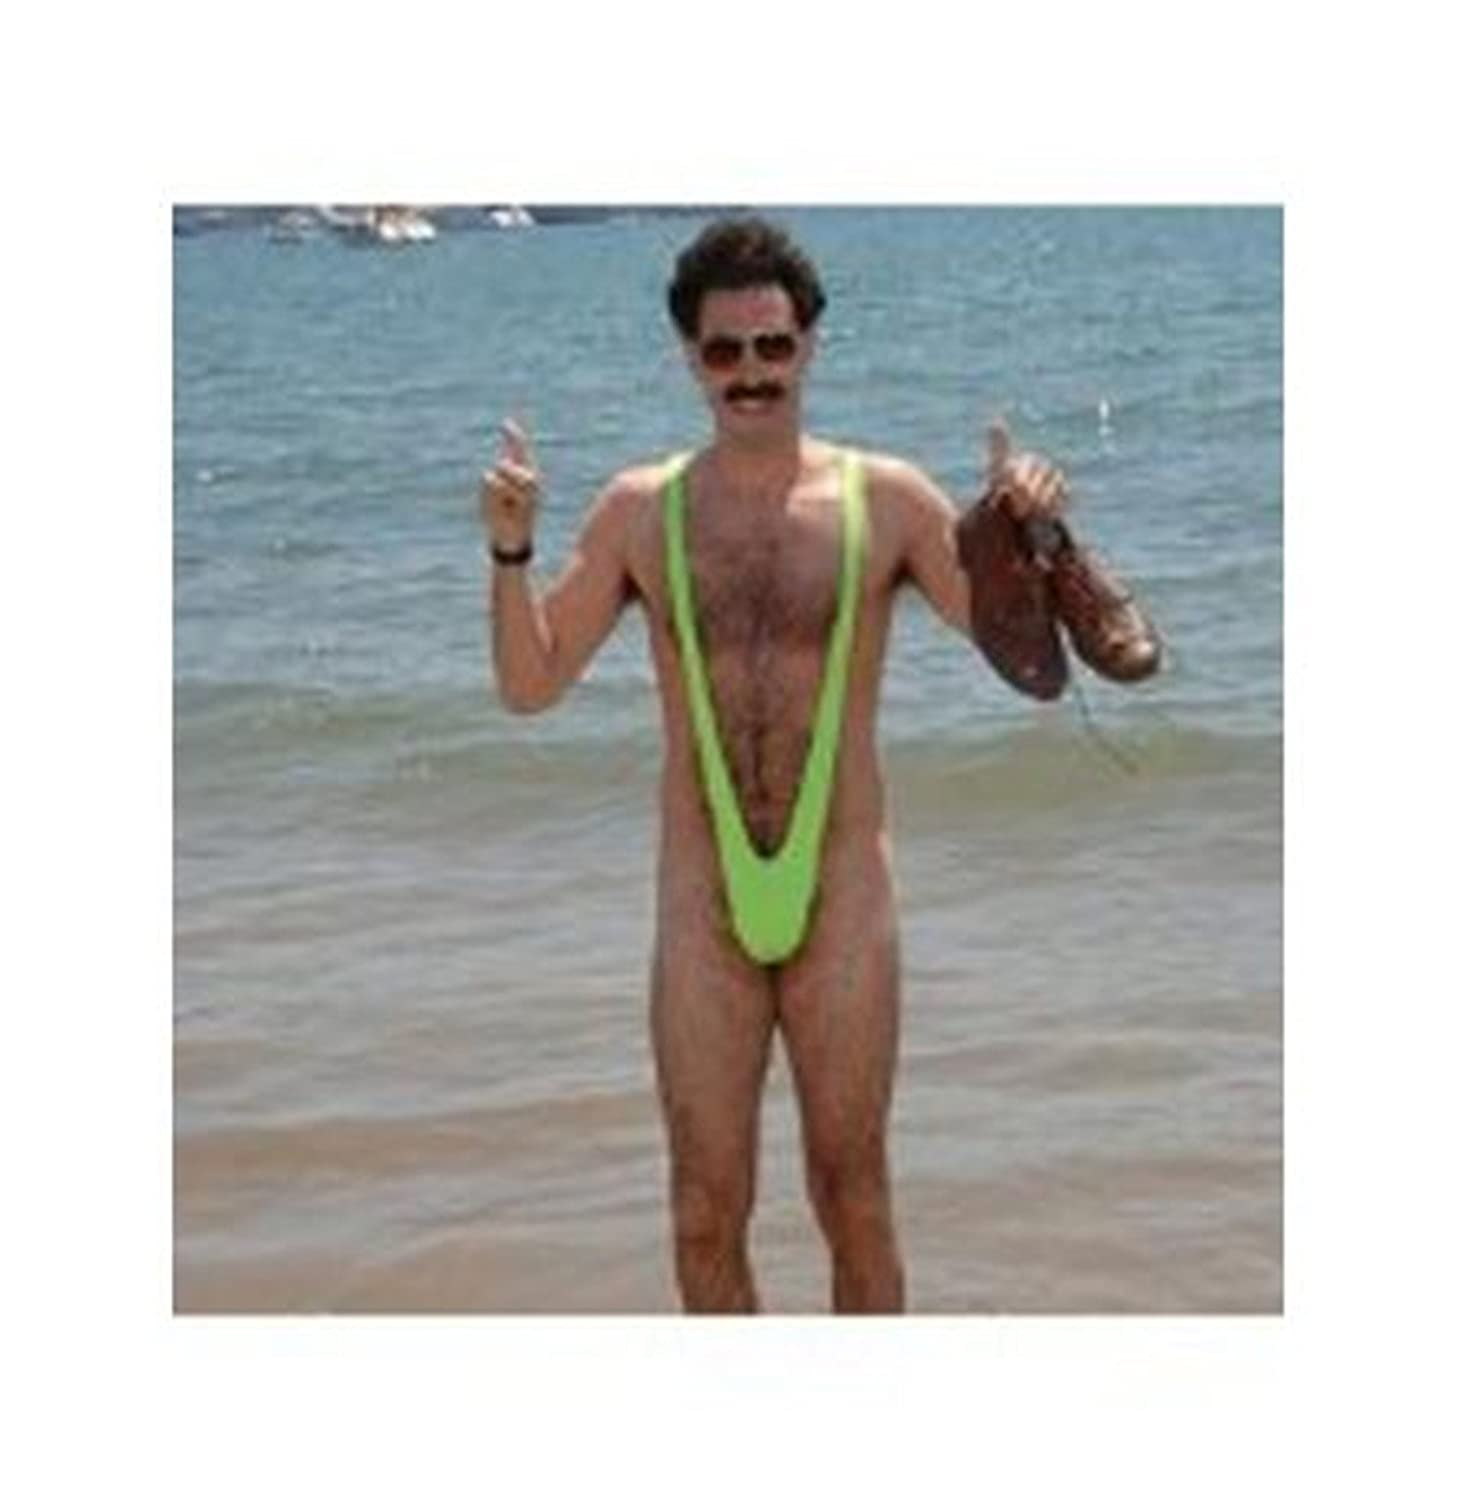 amazon    wiipu borat style mankini swimsuit sling thong underwear teddy bathing swim suit l  clothing amazon    wiipu borat style mankini swimsuit sling thong      rh   amazon